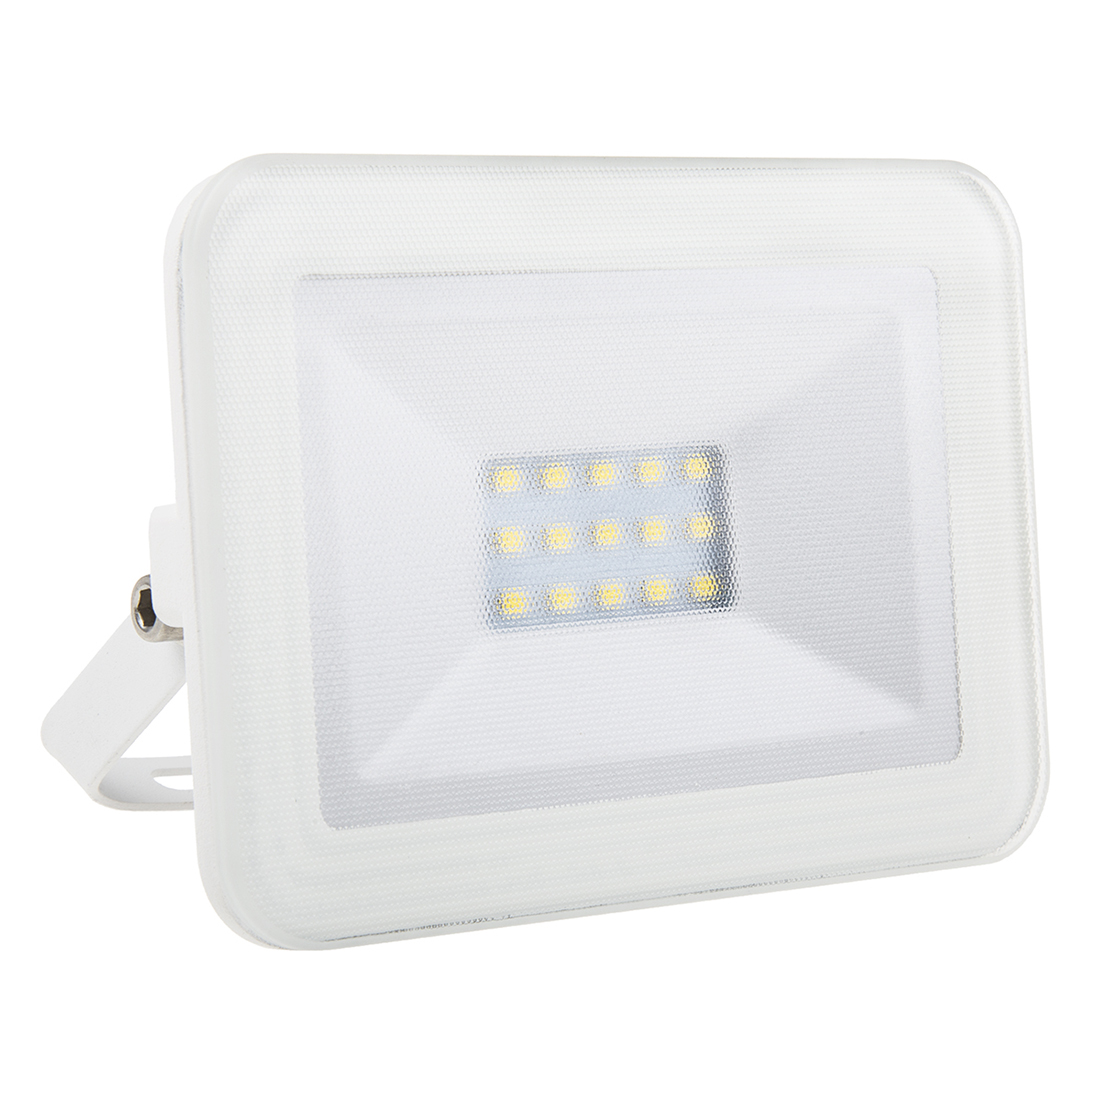 RS PRO Floodlight, 10 W, 900 lm, IP65 220 → 240 V ac